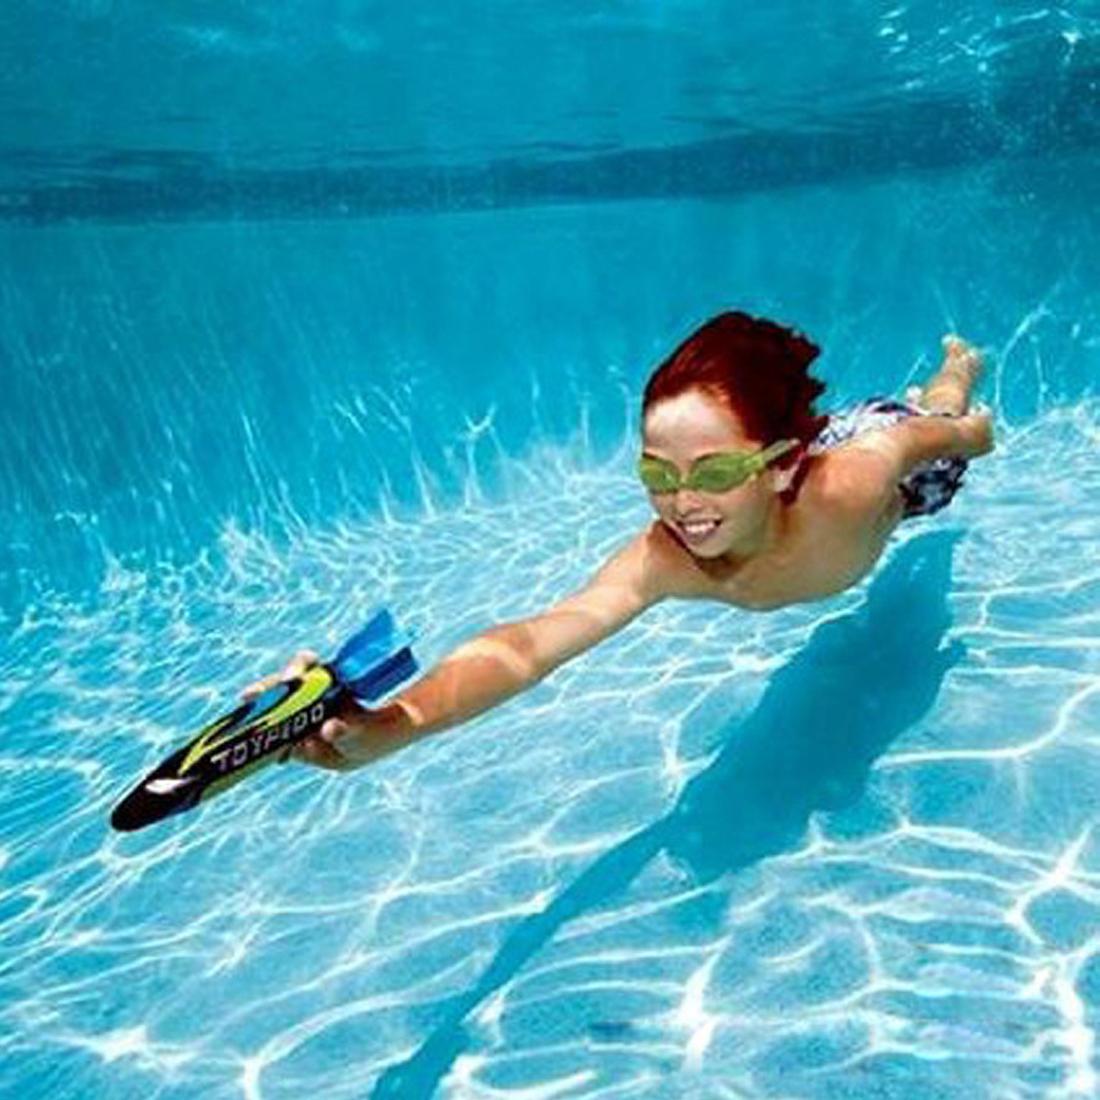 4 Pcs/Set Underwater Grasping Toys Torpedo Toy Children Swimming Pool Diving Underwater Toys Kid Boy Girl Rocket Throw Torpedoes